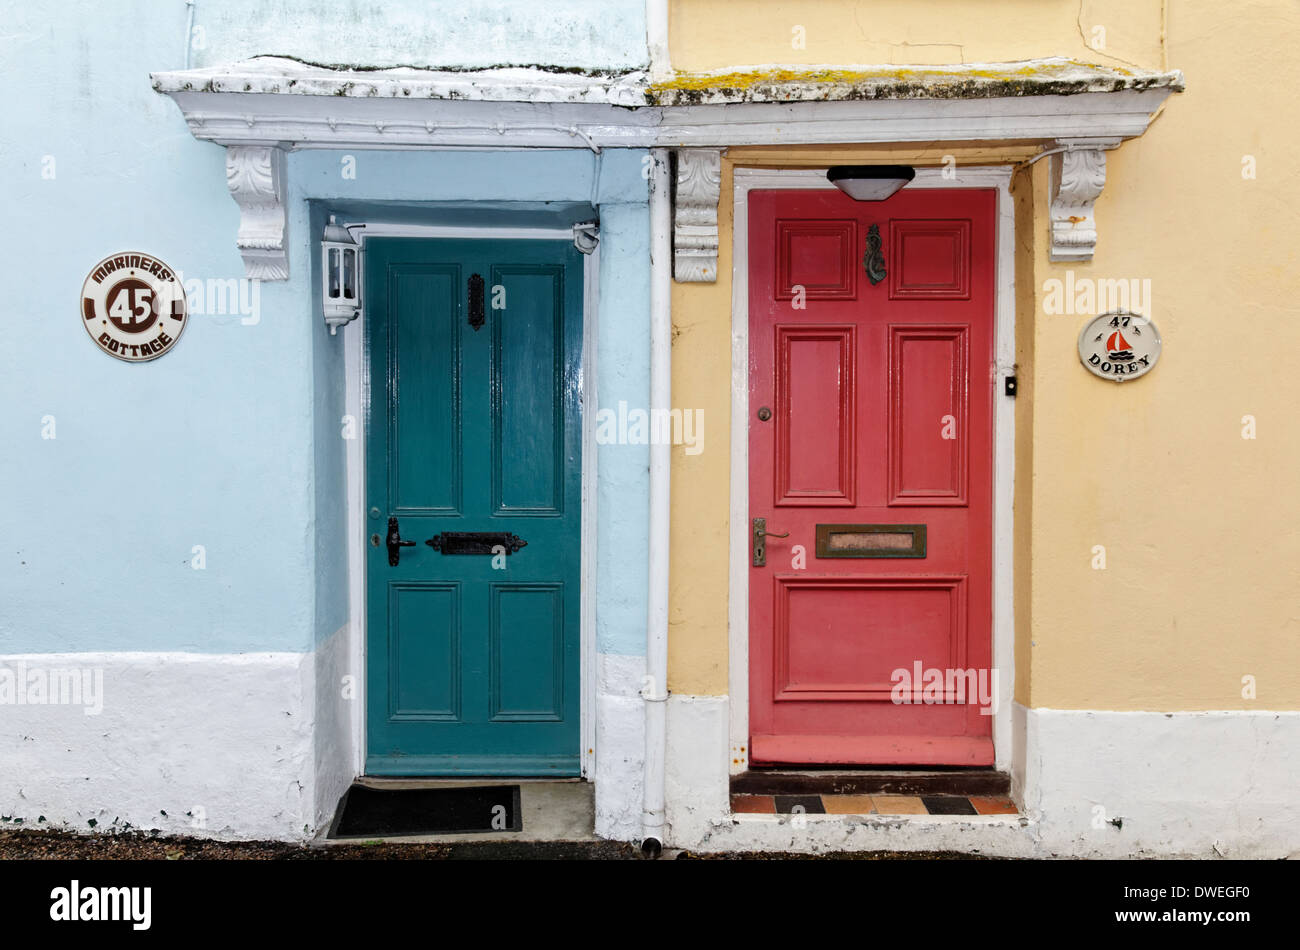 Colourful house doors in the village of Appledore, England, Devon - Stock Image